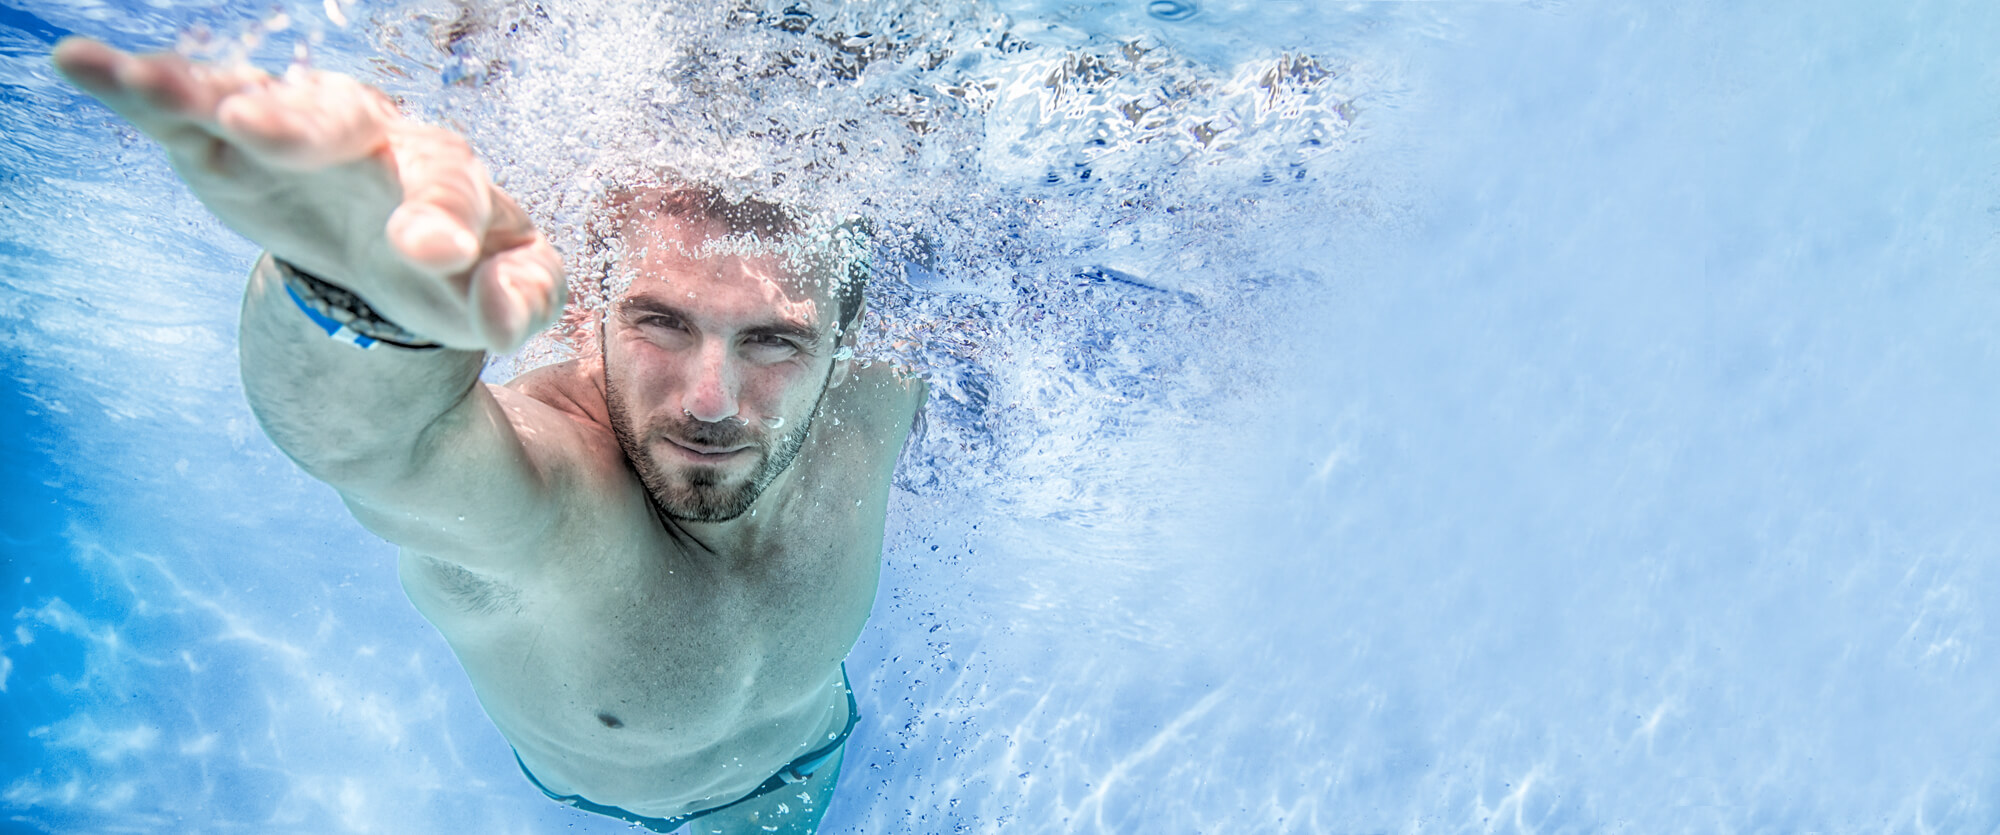 Counter-current system for whirlpools and swimming pools